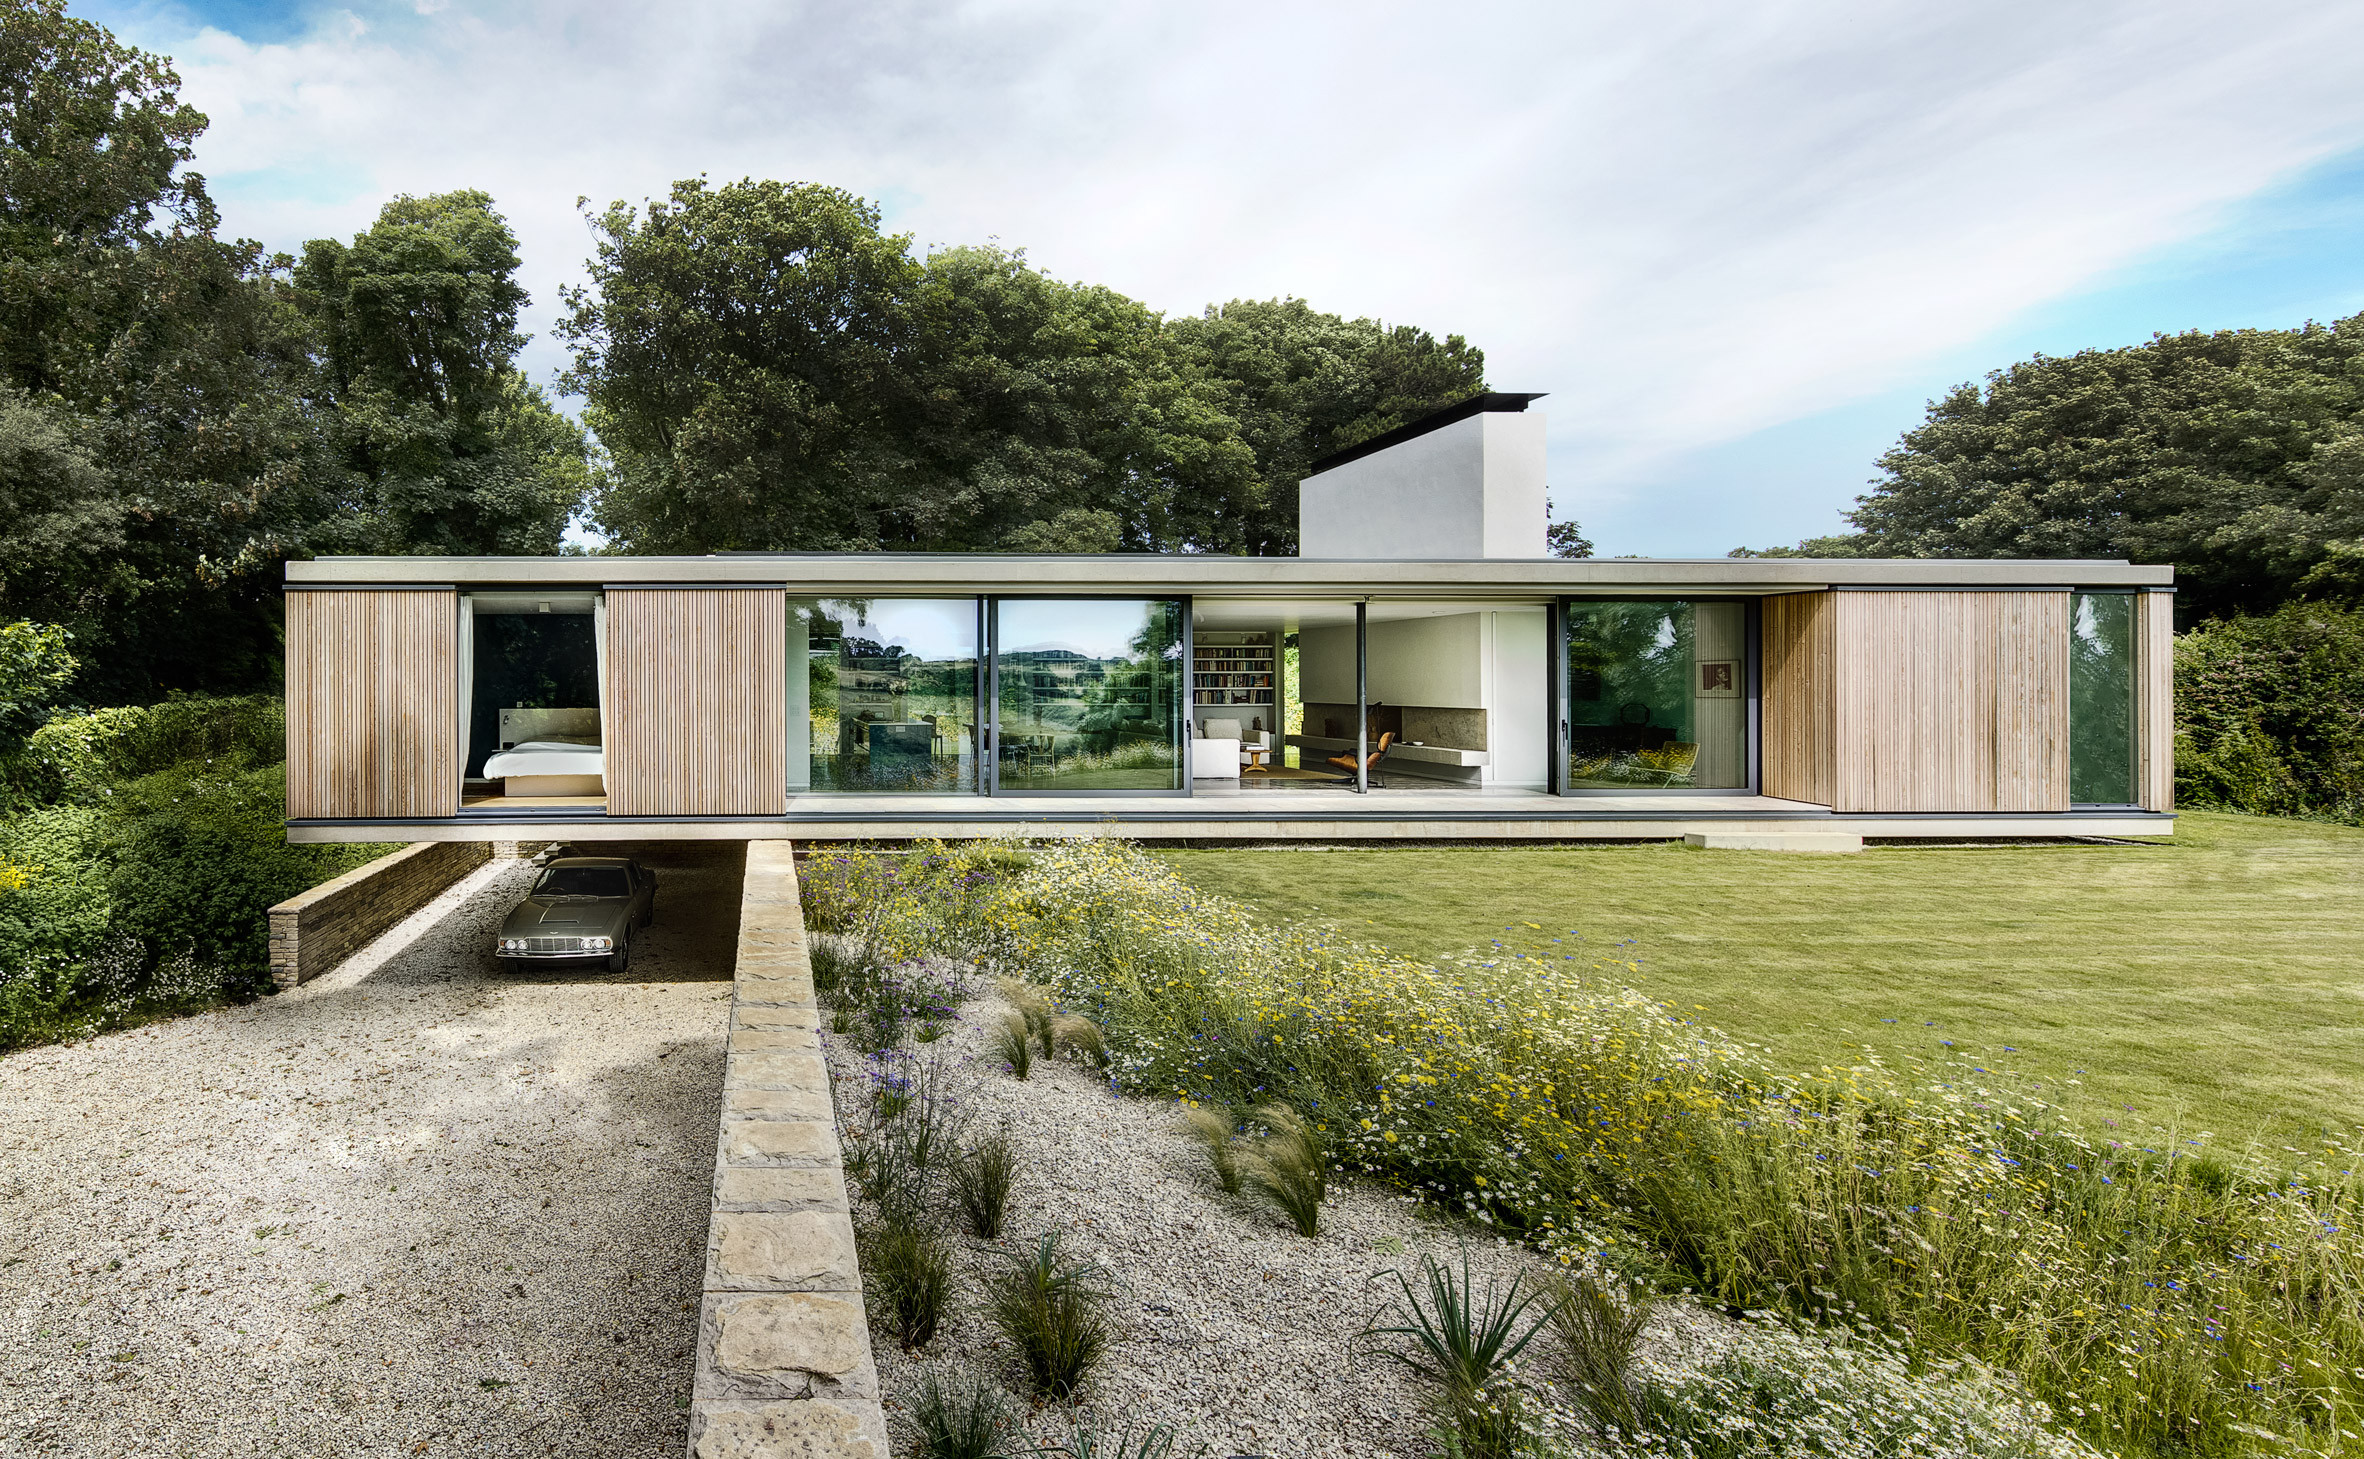 quest-strom-architects-swanage-dorset-uk-residential-architecture-houses_dezeen_2364_col_6